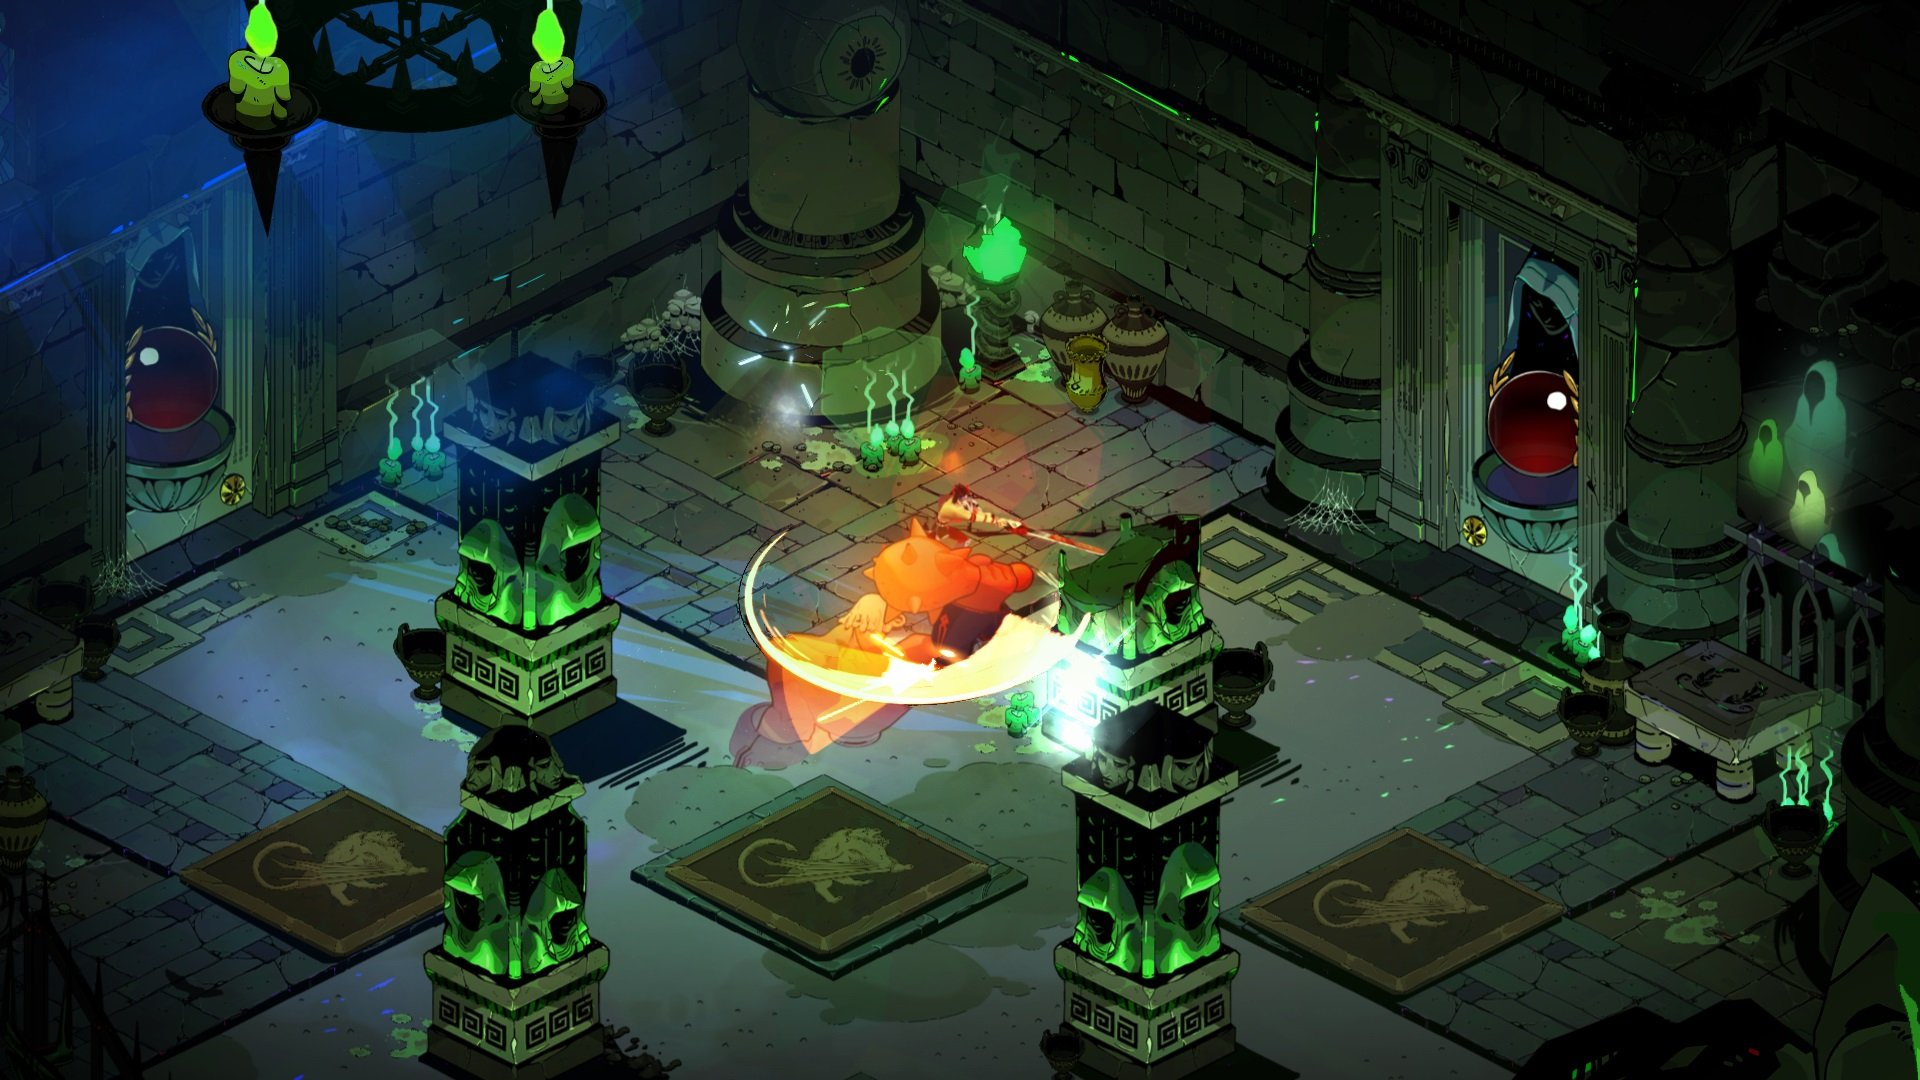 Supergiant applied various different concept from previous games like Bastion, Transistor, and Pyre into Hades.